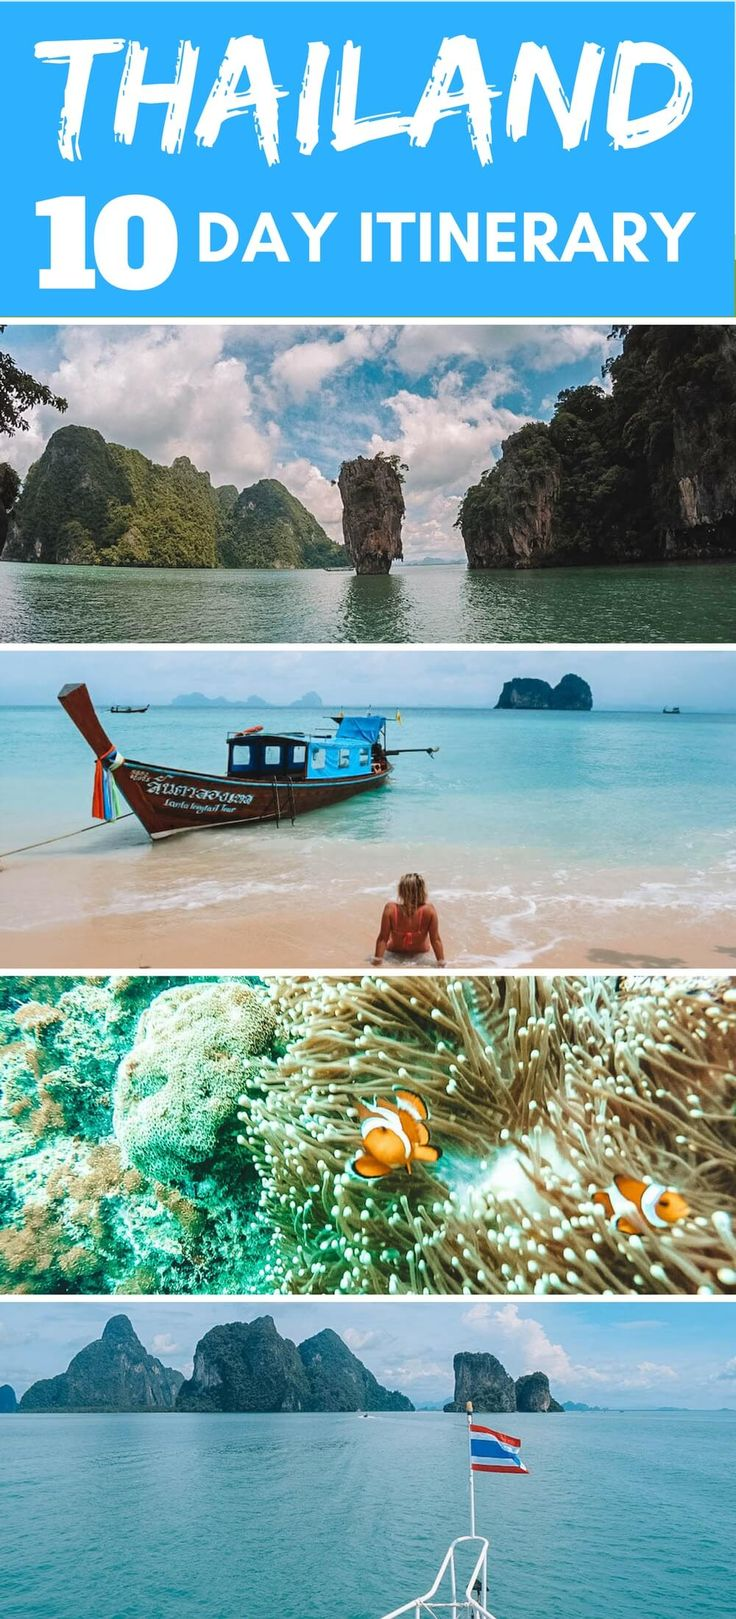 2348 best Voyage images on Pinterest | Destinations, Travel advice ...